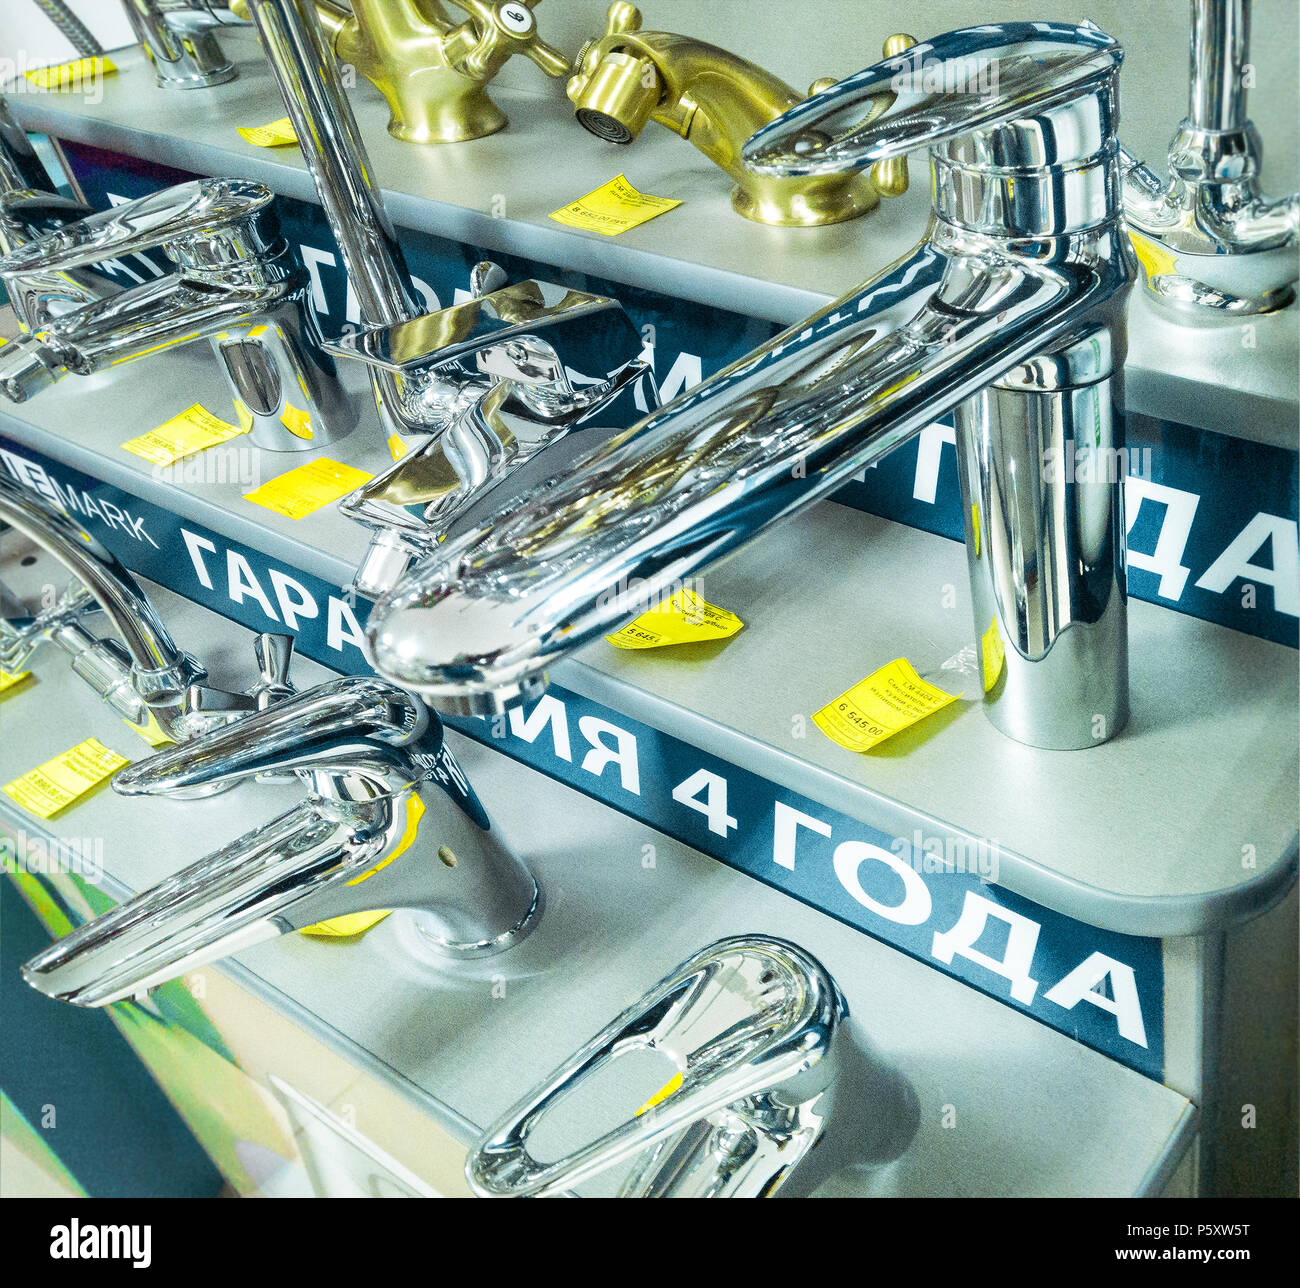 Krasnodar, Russia - december 07, 2017: water taps displayed at sanitary-ware manufacturer's exposition. LeMark, Chech republic - Stock Image